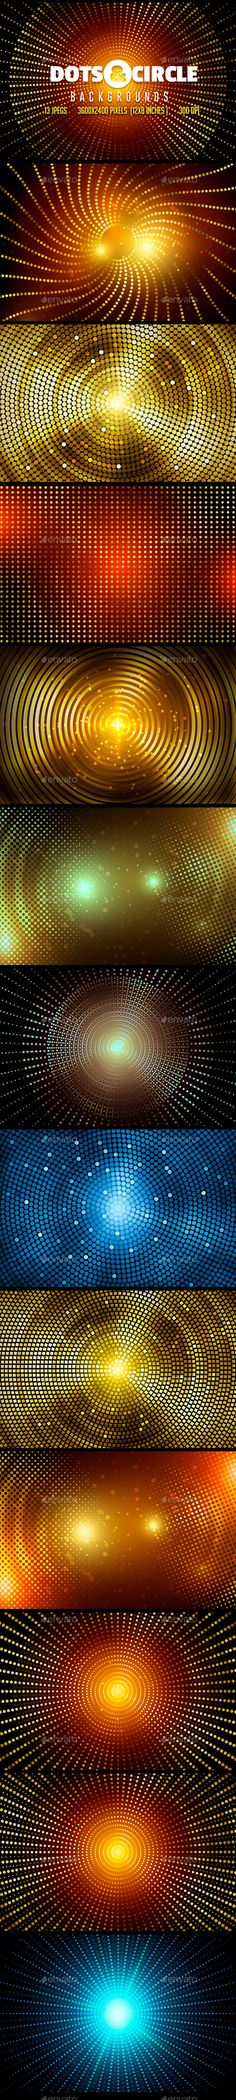 Dots & Circle Backgrounds